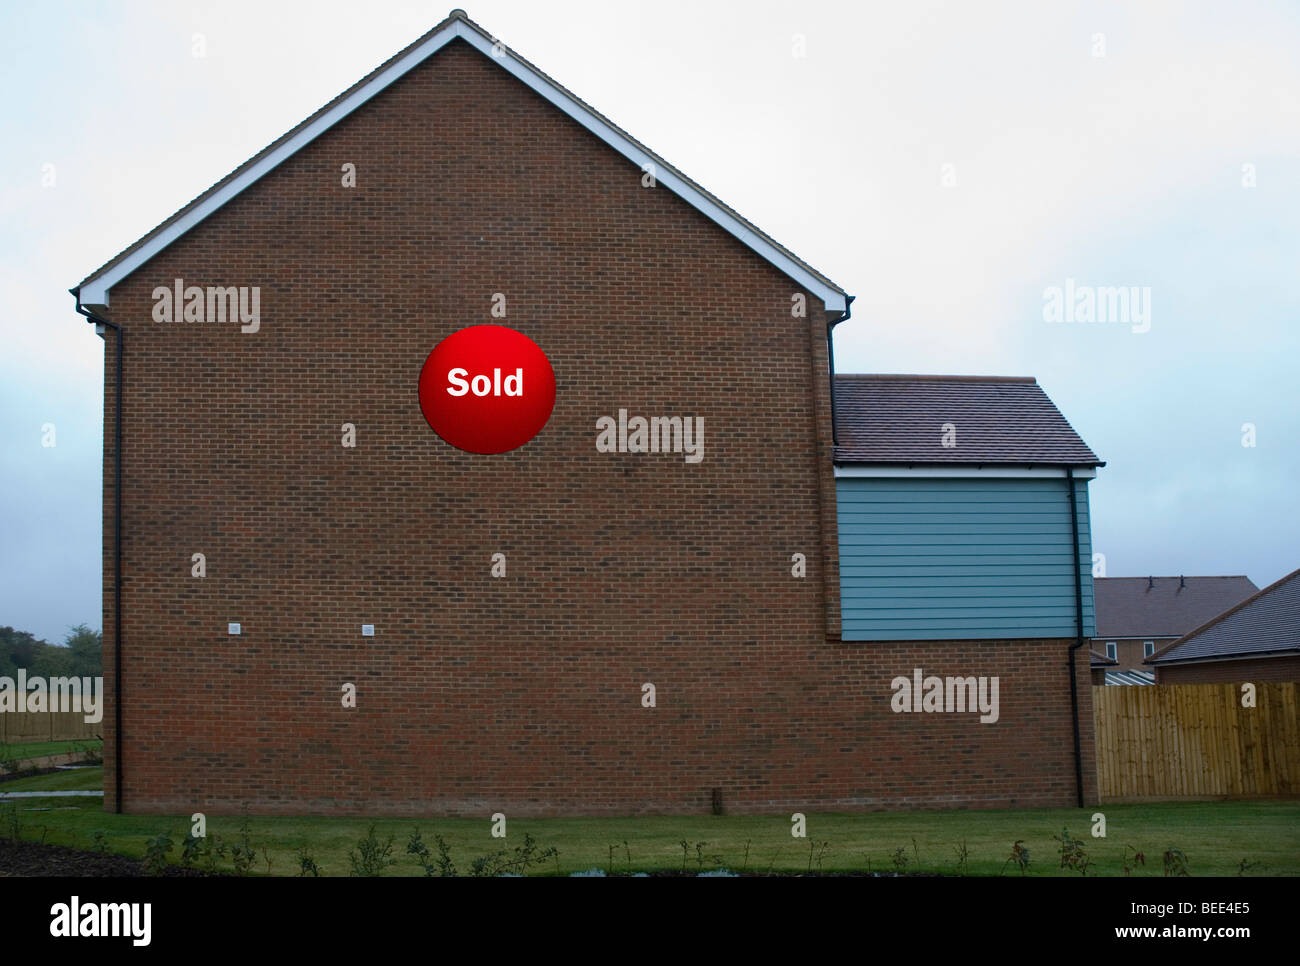 house for sale gable end - Stock Image